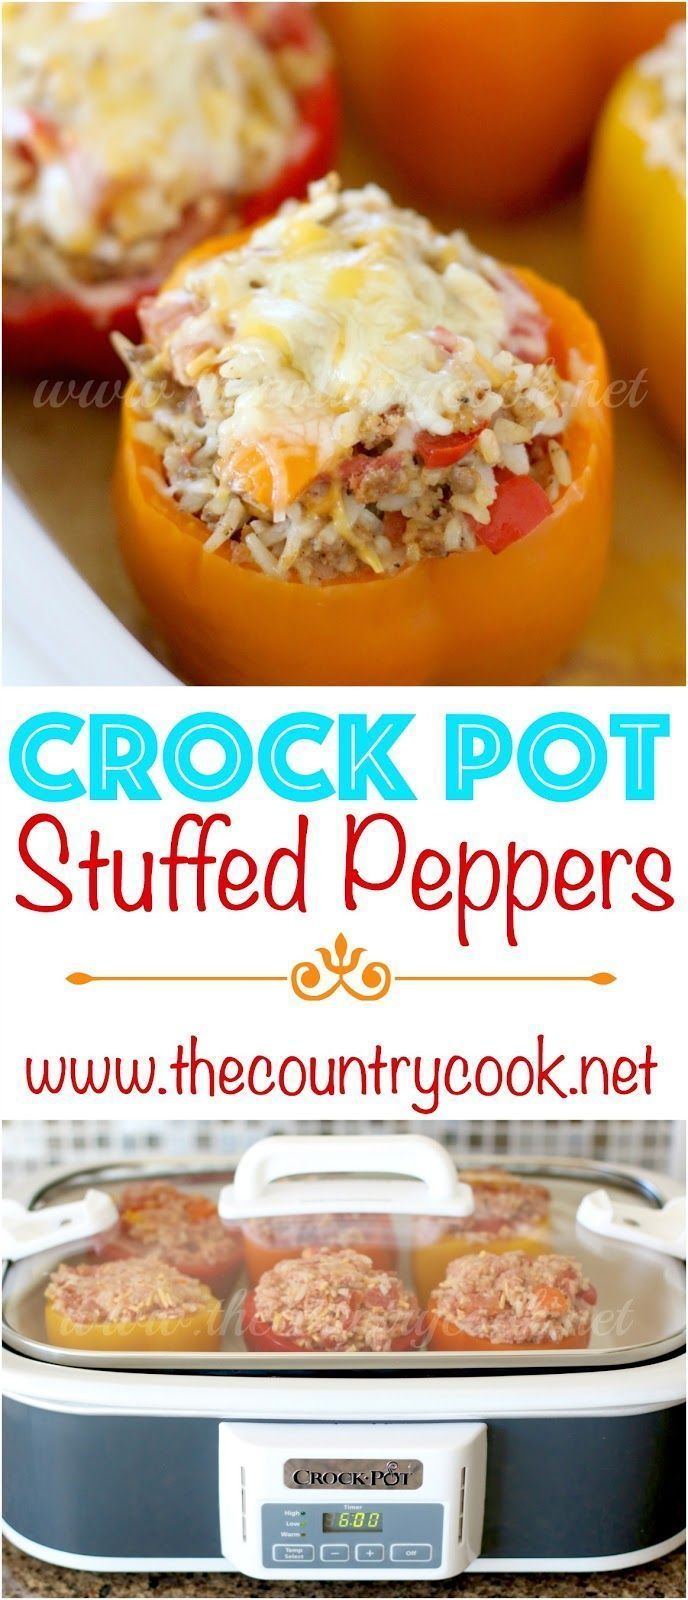 Crock Pot Stuffed Peppers Recipe Stuffed Peppers Country Cooking Food Recipes